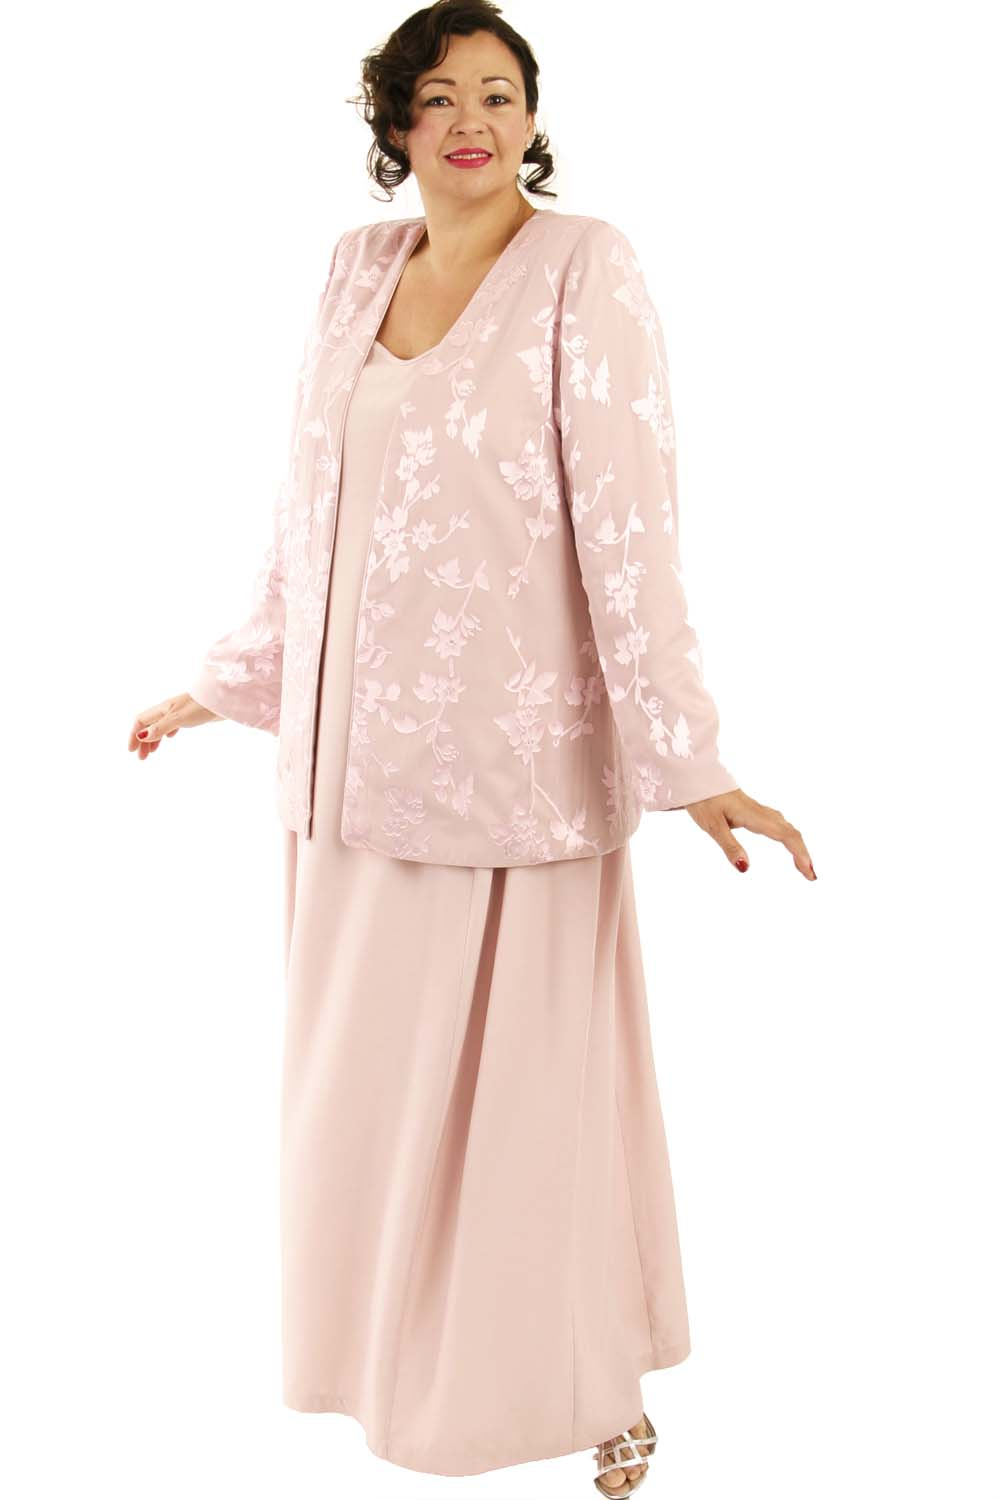 Plus Size Mother Bride Formal Jacket Silk Floral Diamante Pink Custom Made  Sizes 14 - 32